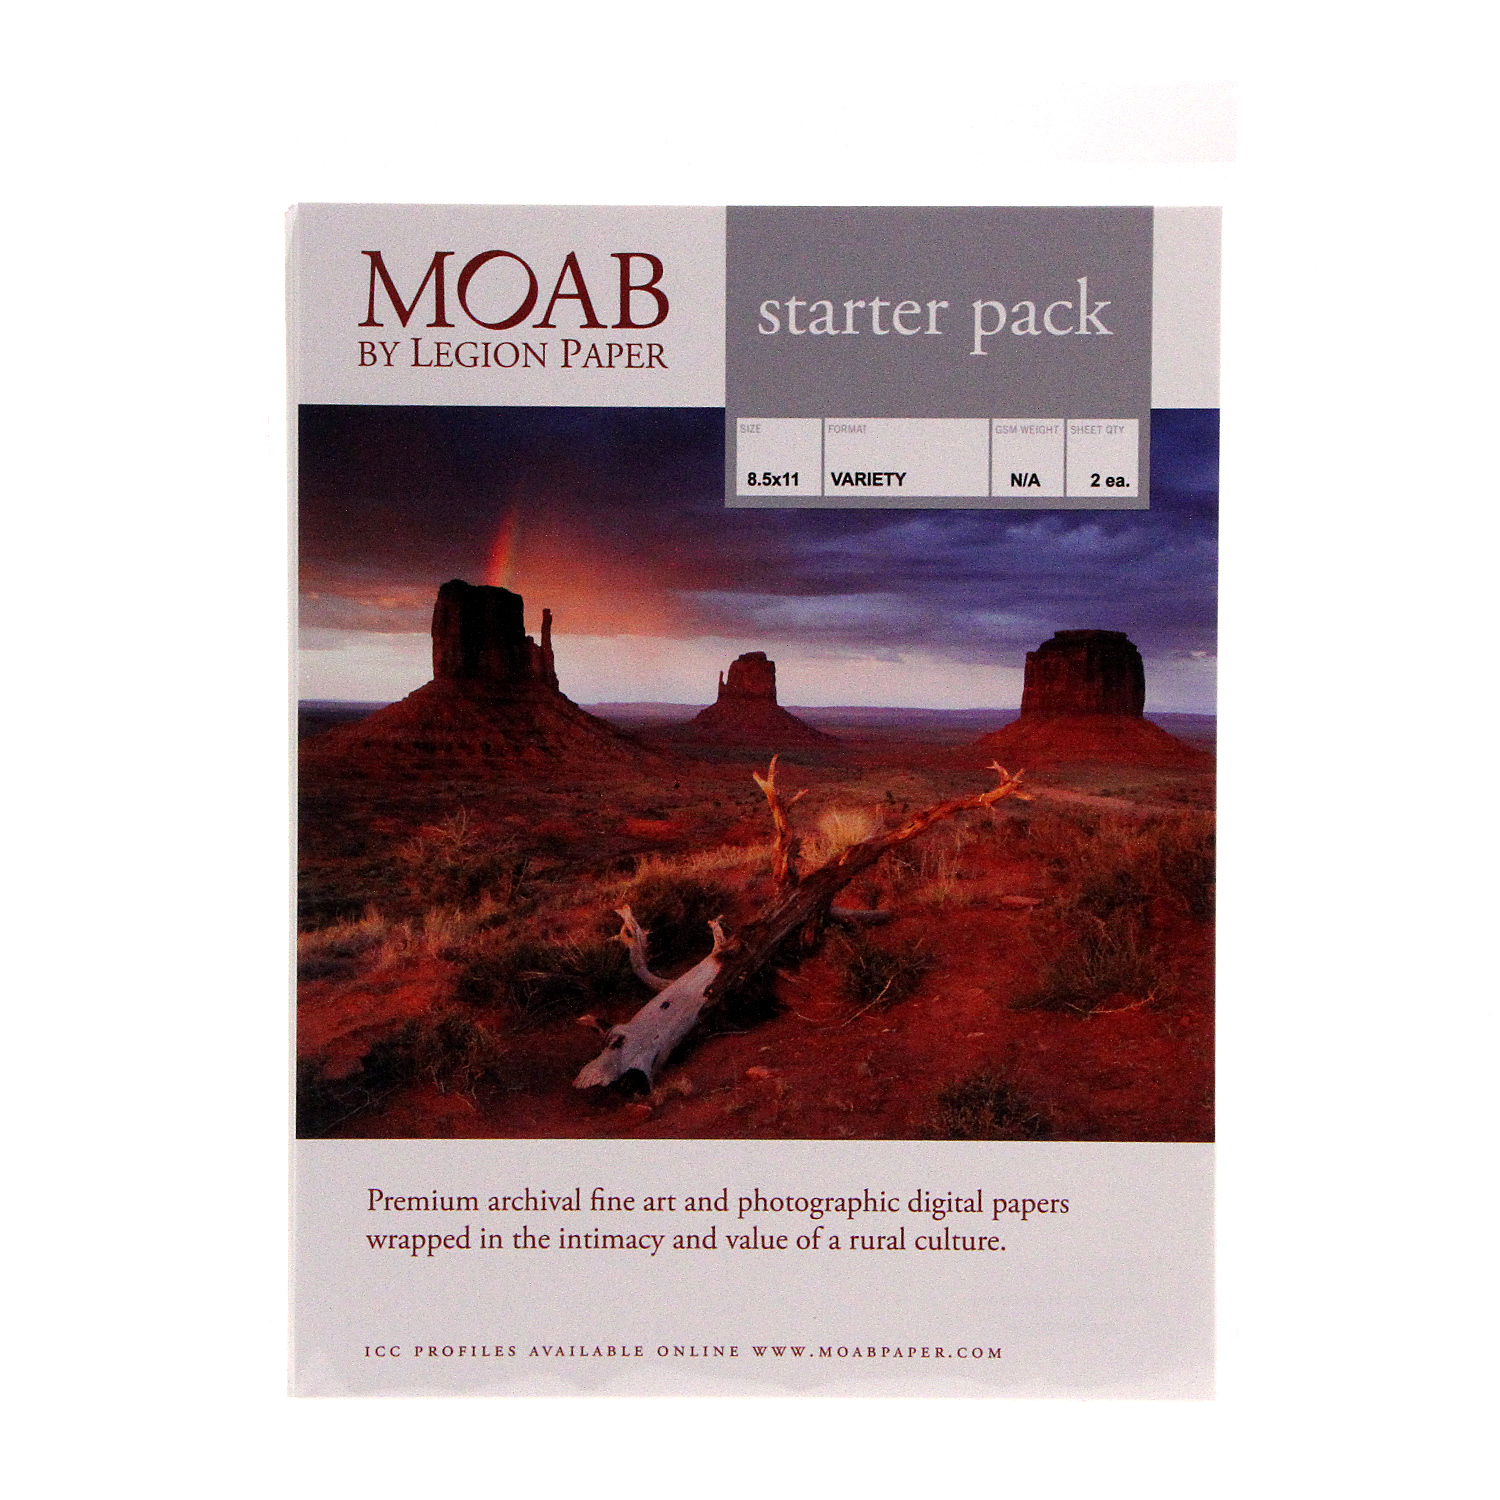 Matte NEW Canon Pro Paper Sampler Pack 20 Sheets 8.5 x 11 Platinum Glossy